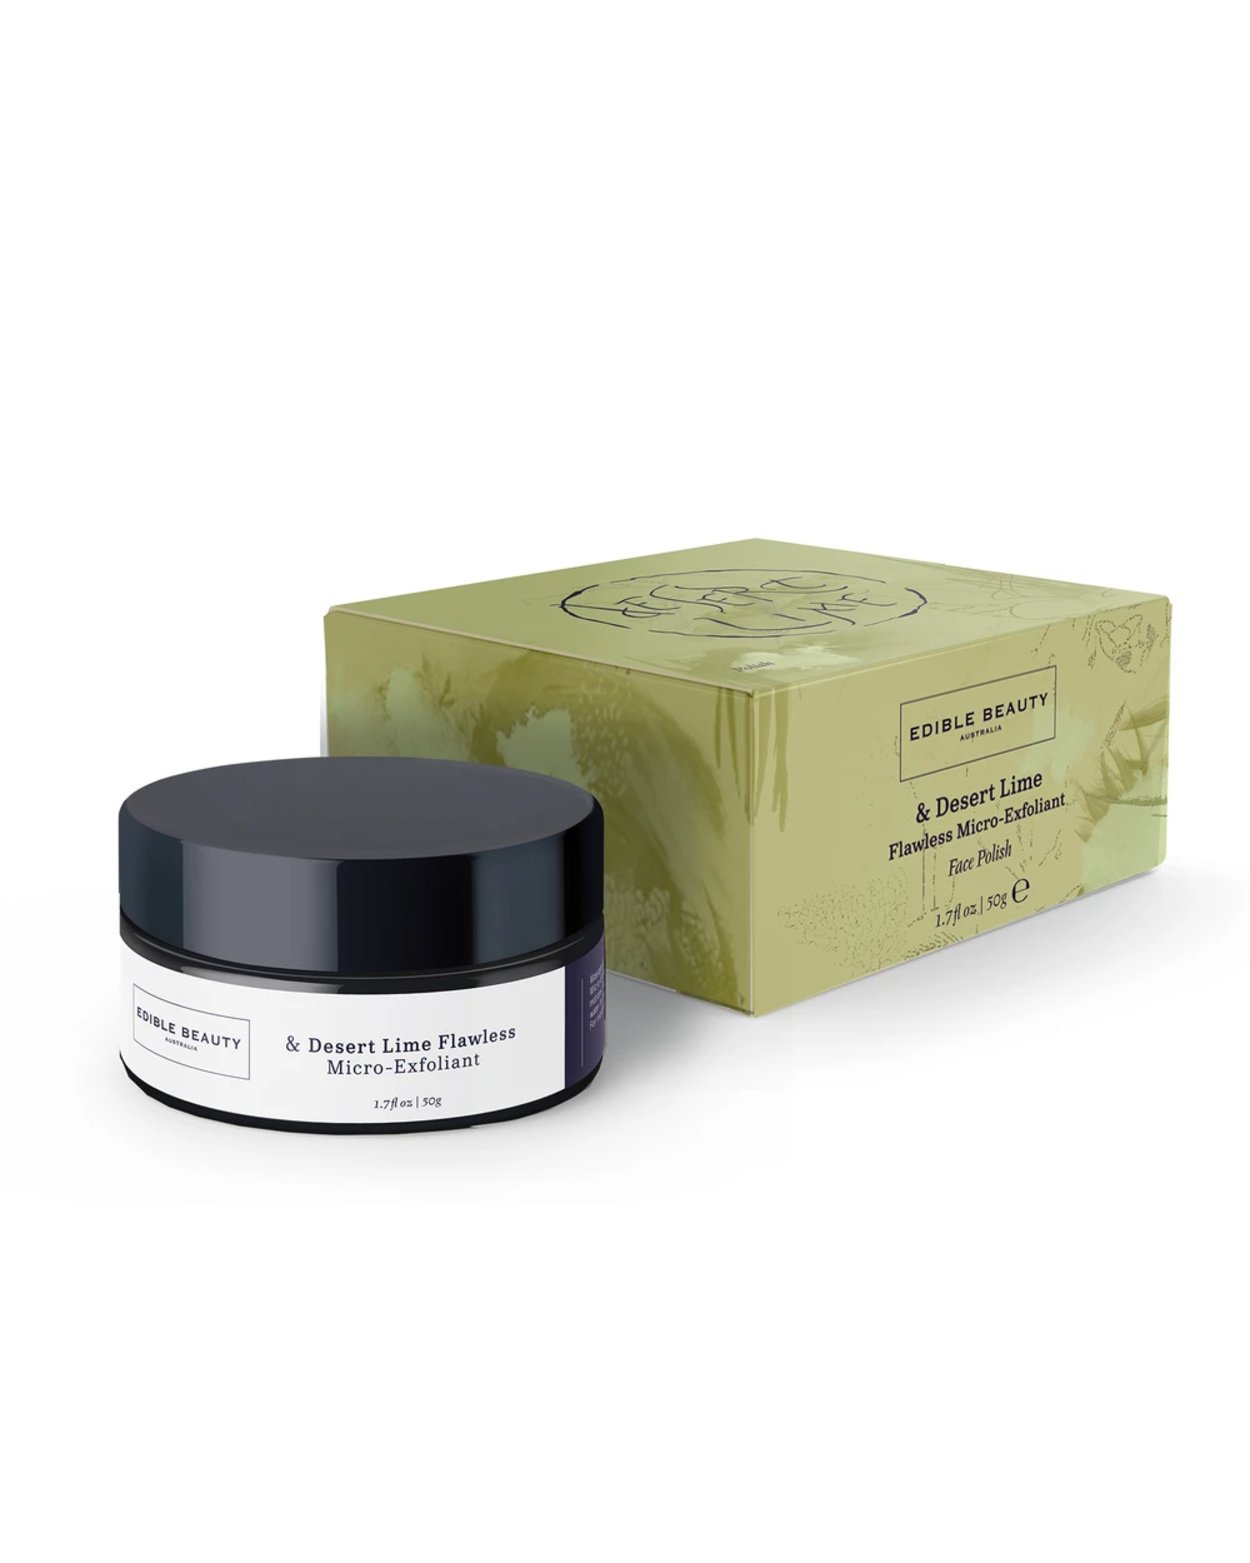 & Desert Lime Flawless Mico Exfoliant